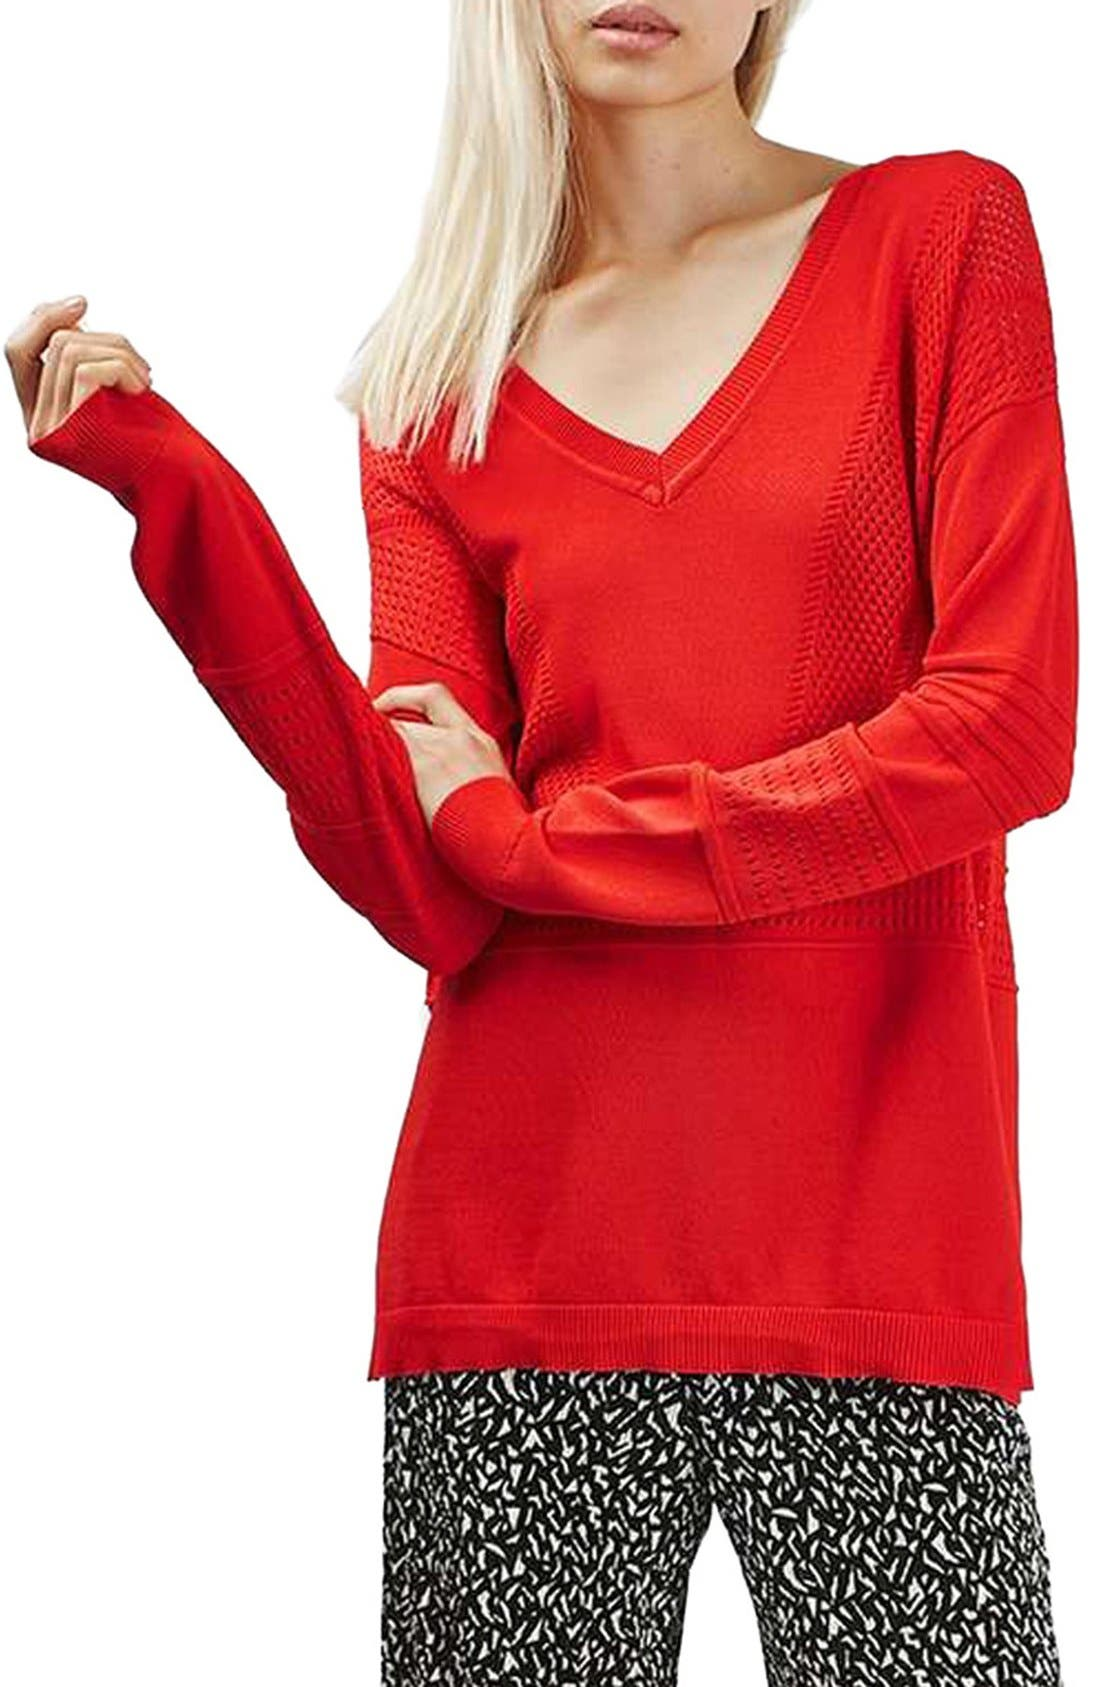 Alternate Image 1 Selected - Topshop Pointelle & Rib V-Neck Sweater